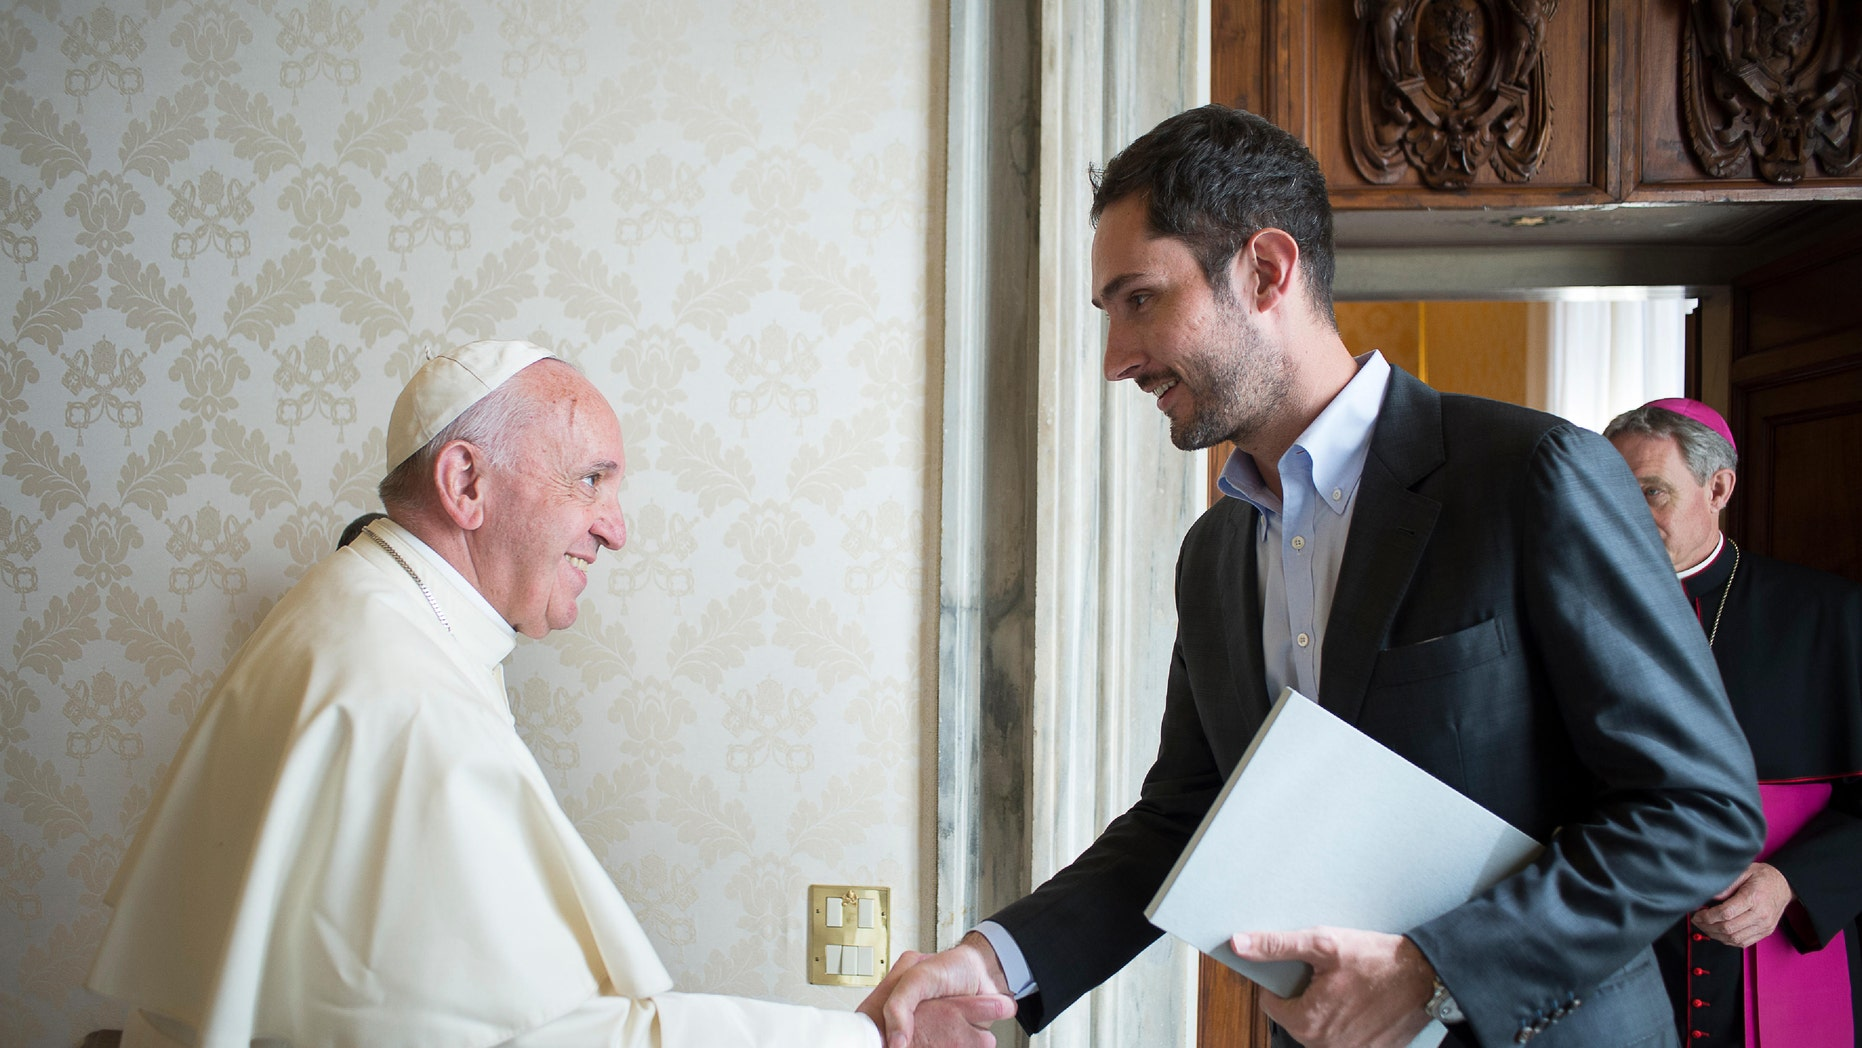 Instagram CEO Kevin Systrom gets to hang out with the Pope